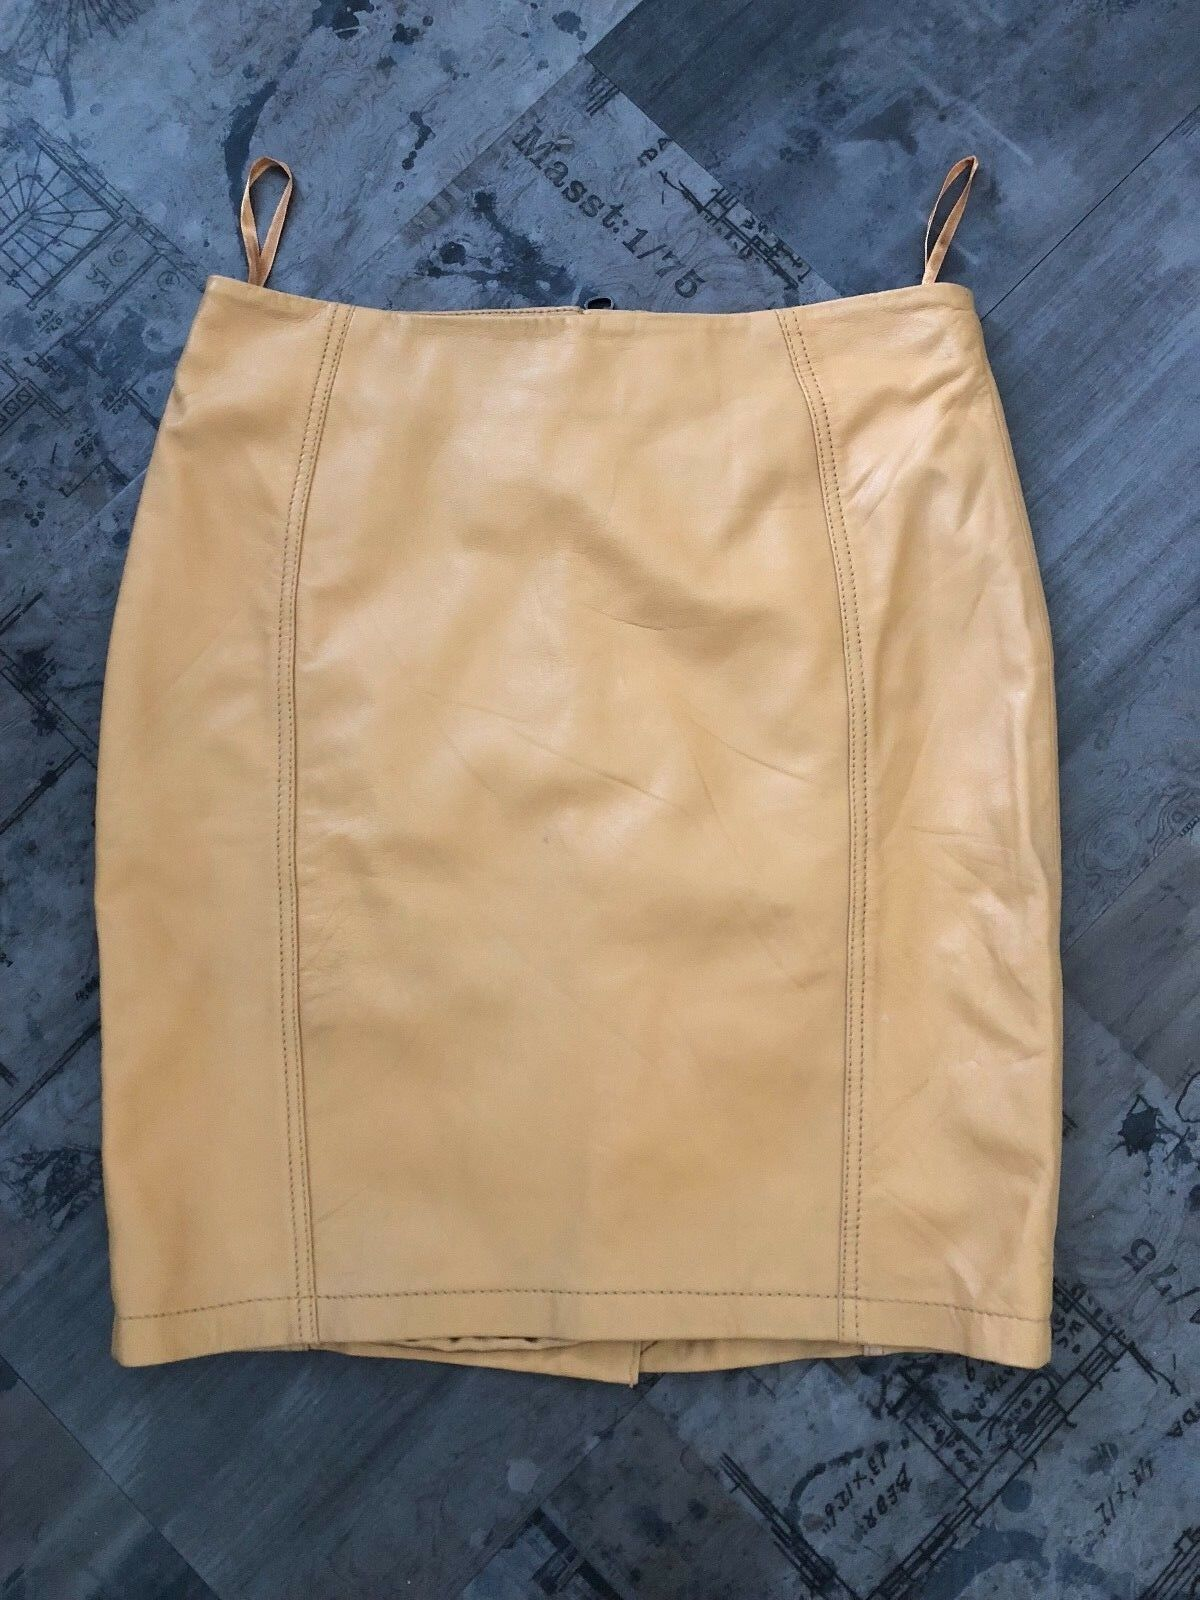 TOP SHOP LEATHER MINI. NEW.Butter Soft . UK Limited Edition Women's Skirt